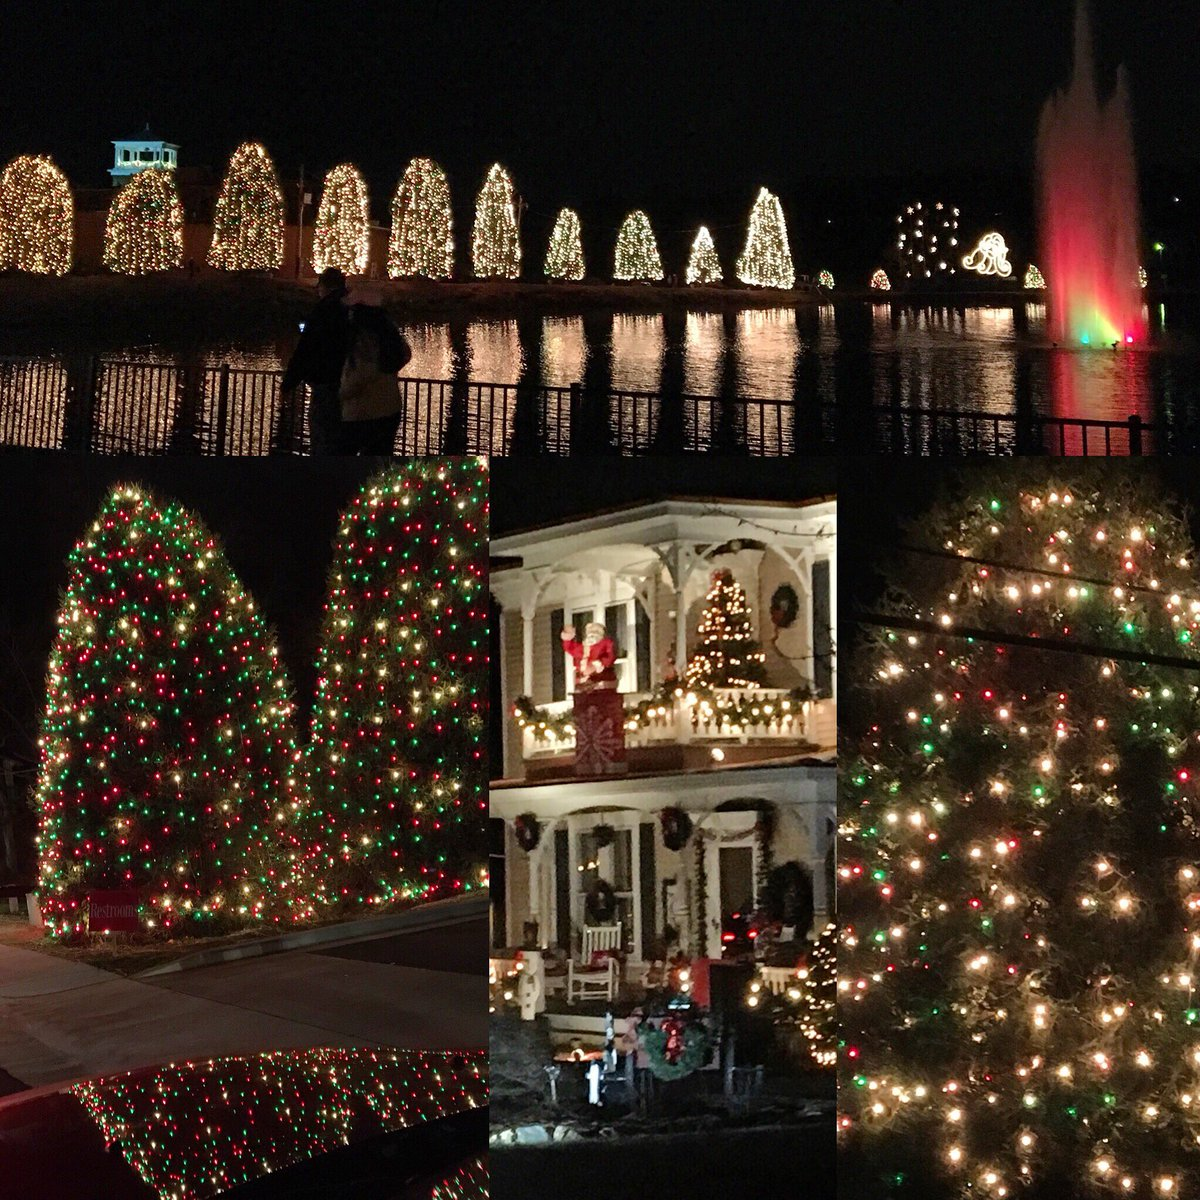 ryan mcgee on twitter mcadenville nc aka christmas town usa been coming here since i was a kid always amazing